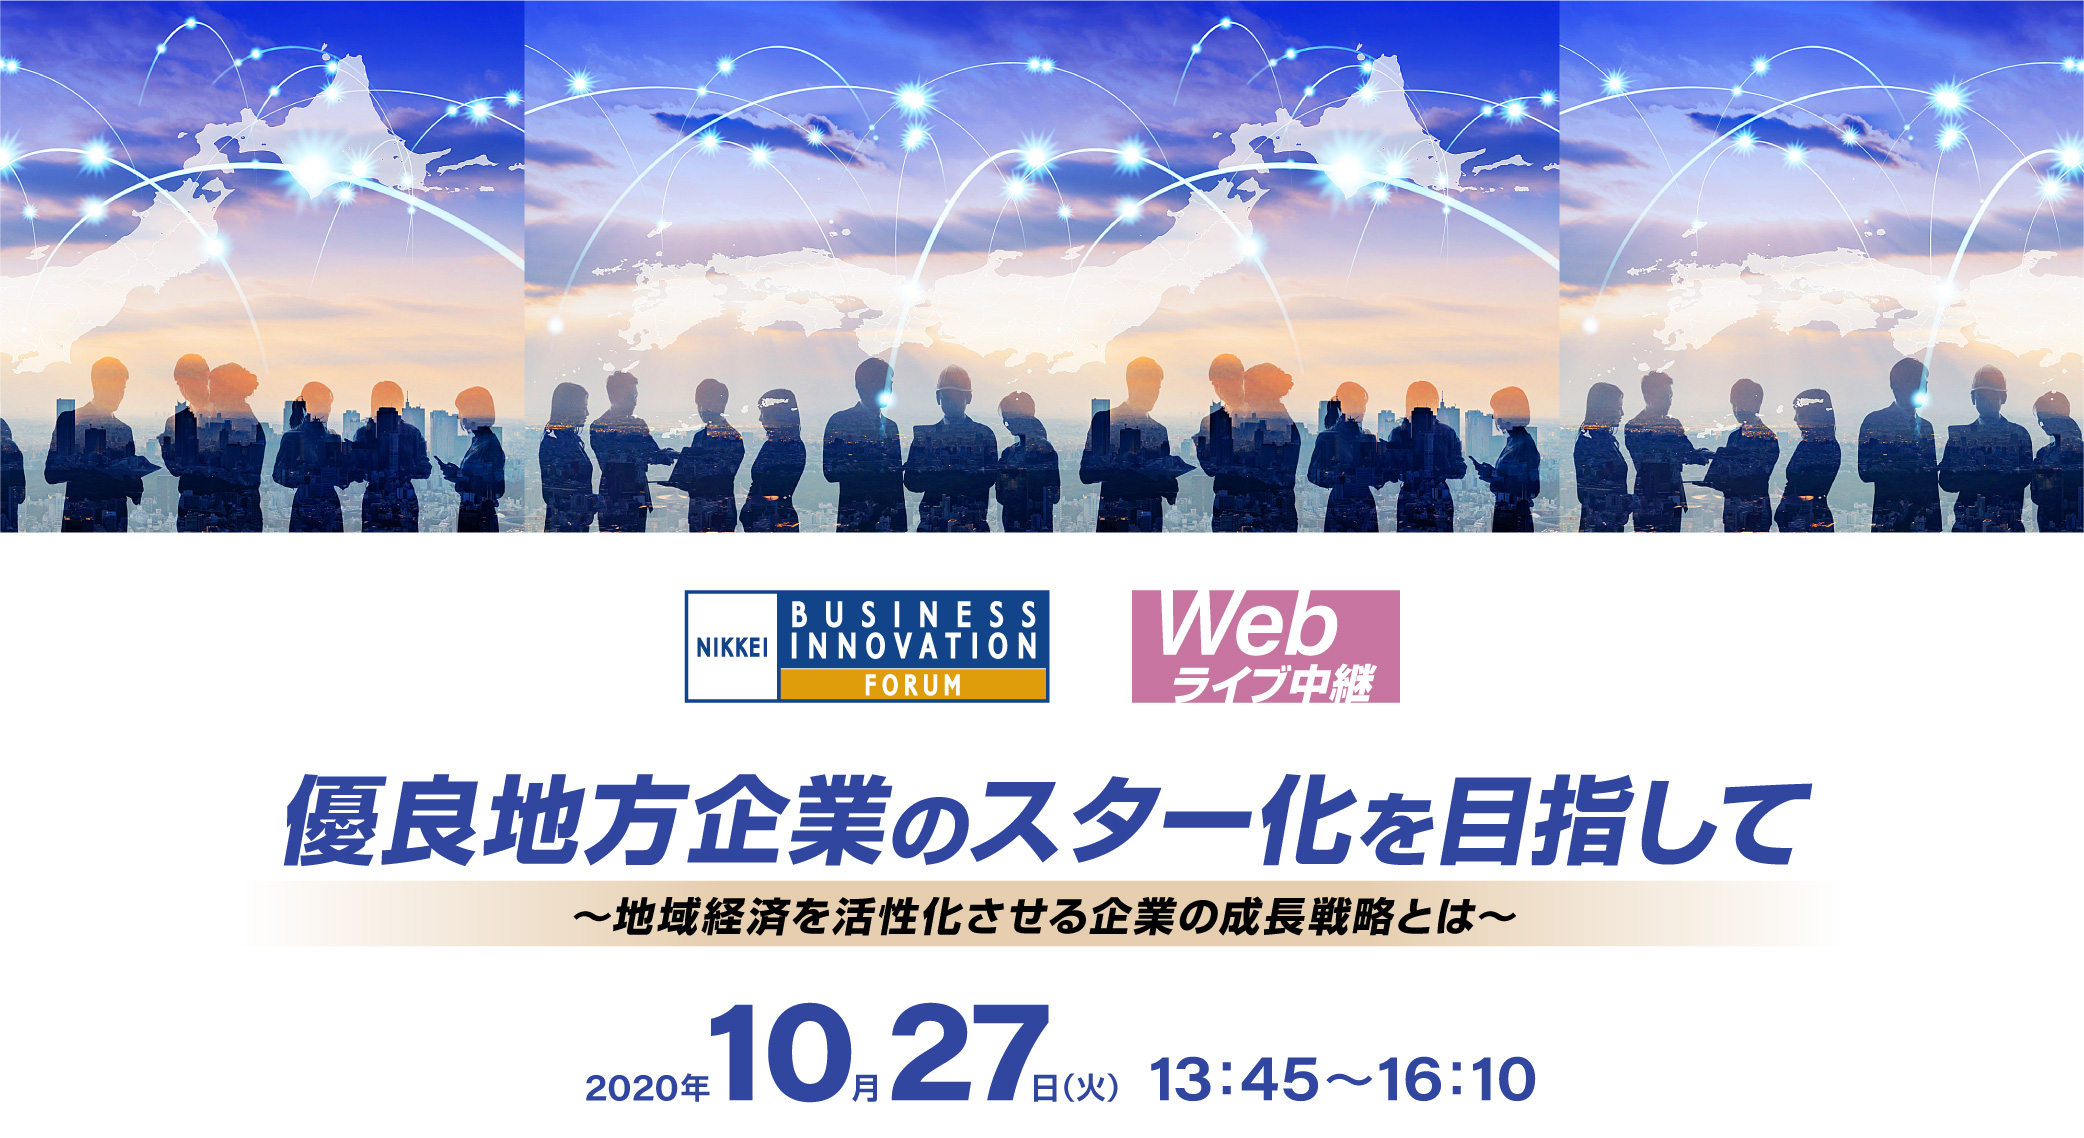 Nikkei Business Forum